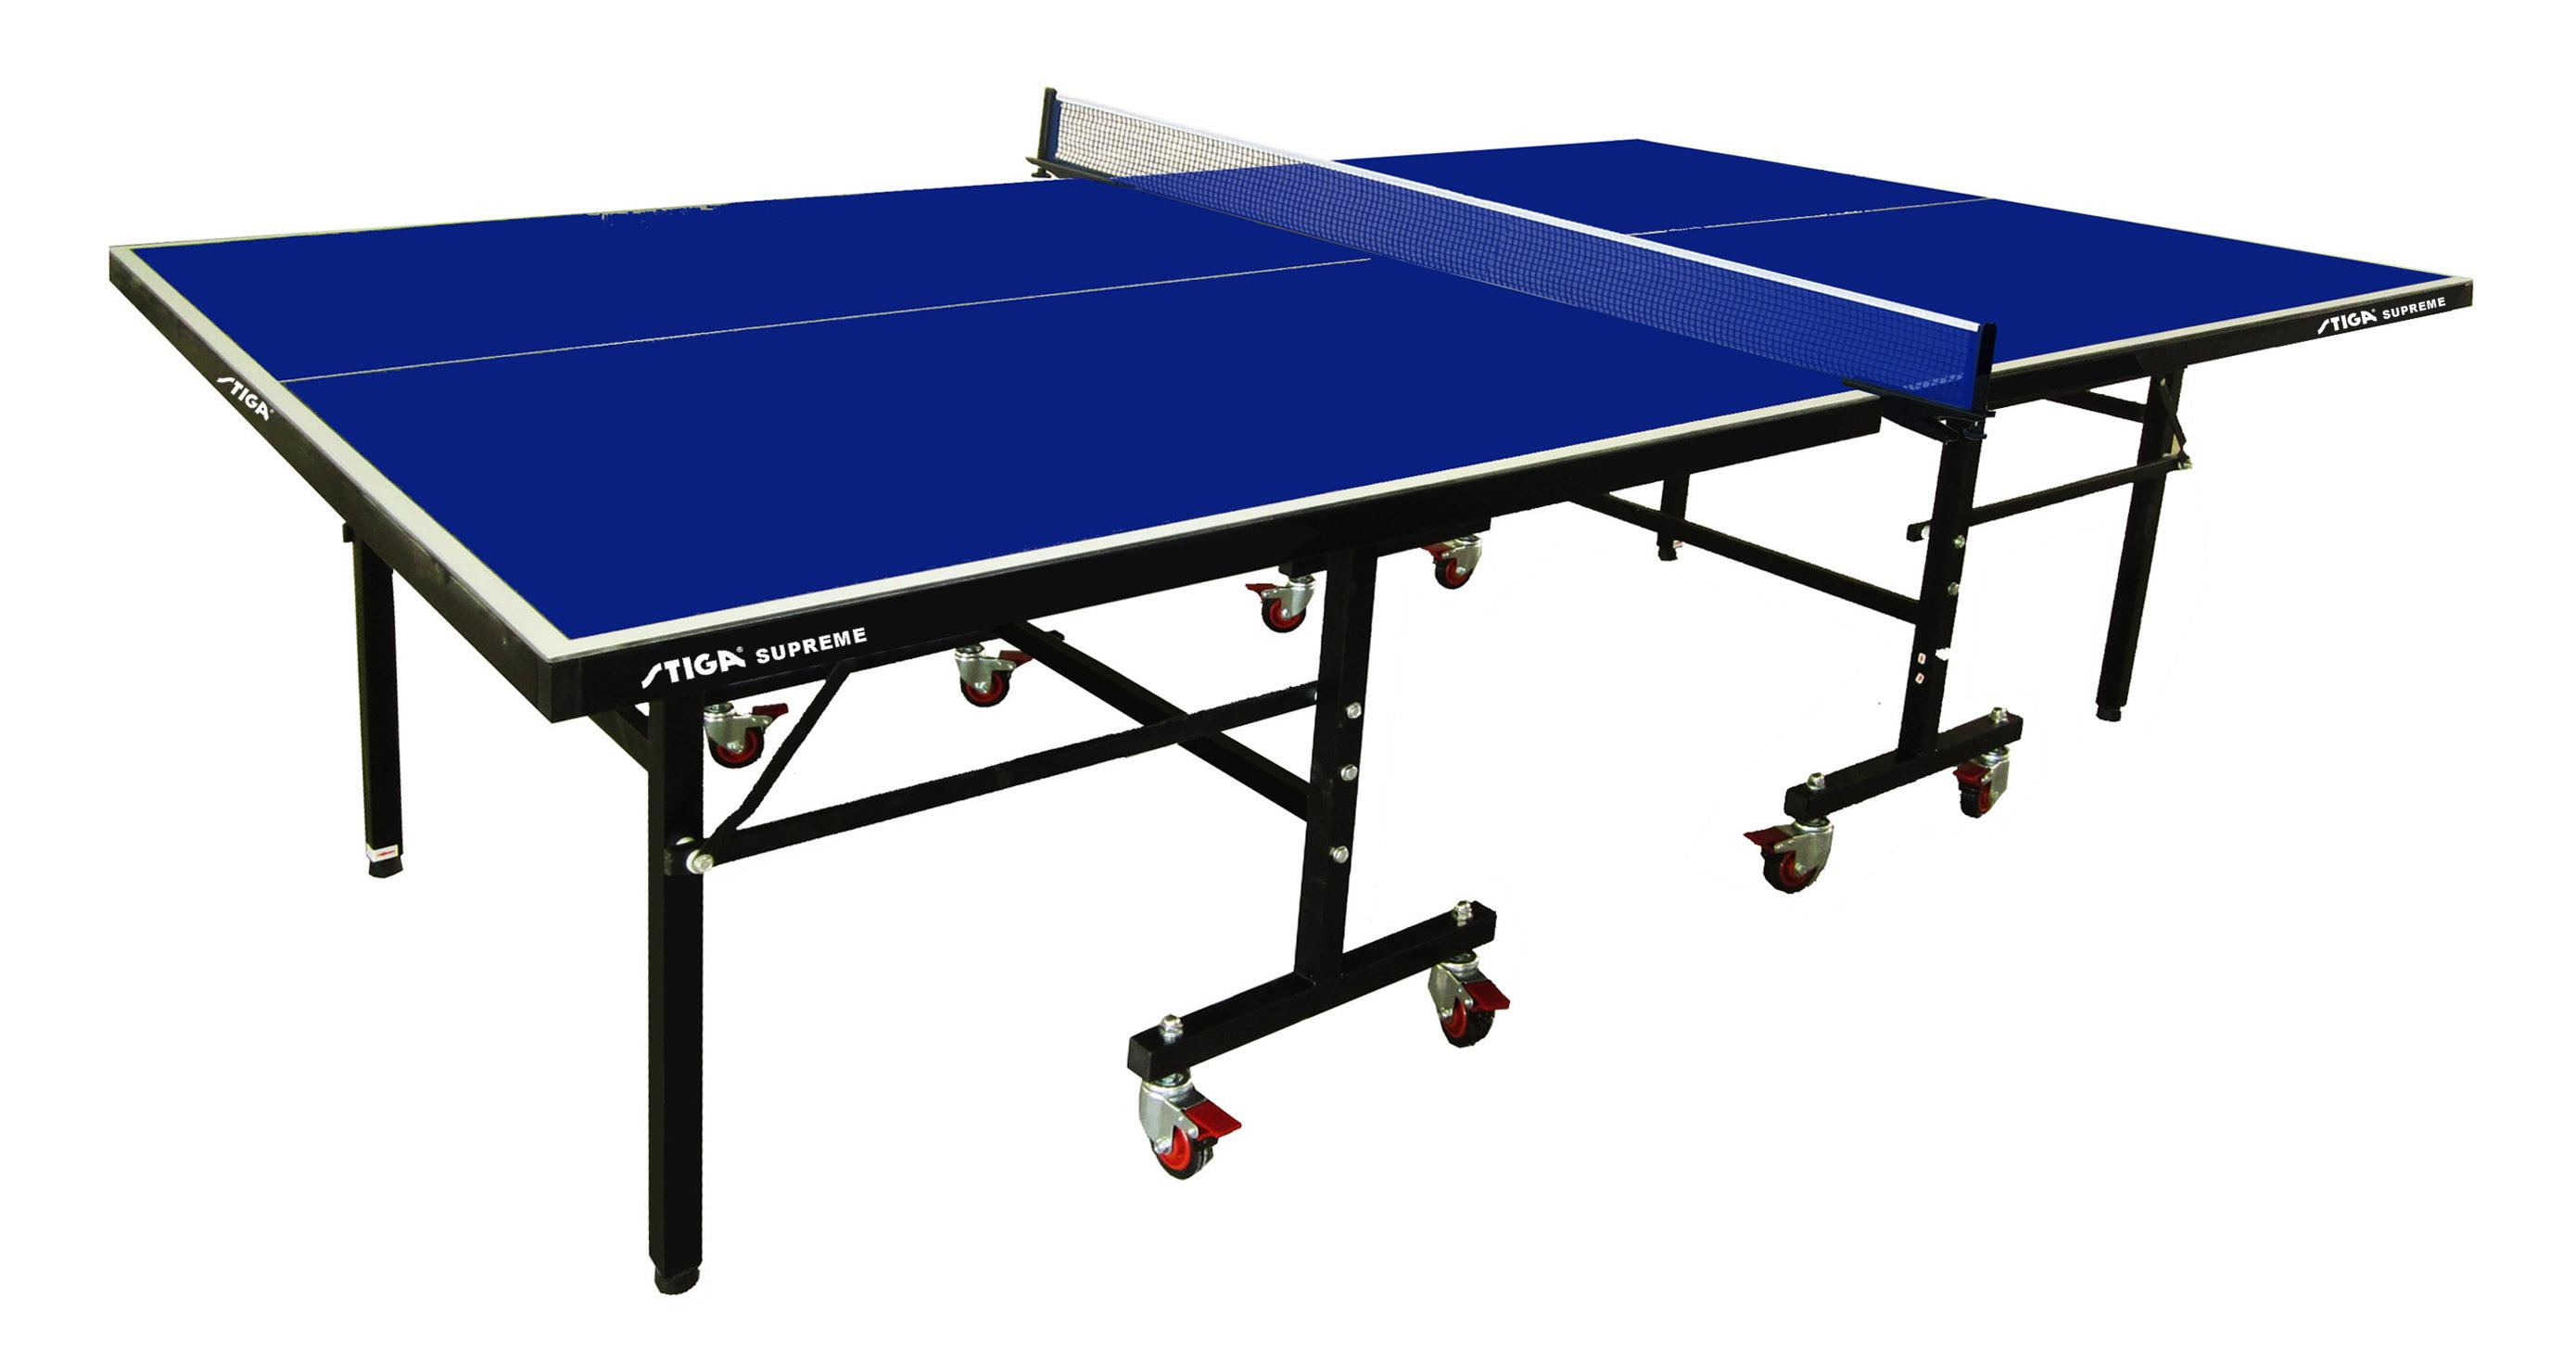 Stiga supreme outdoor table tennis table tennis racquets - Stiga outdoor table tennis table ...